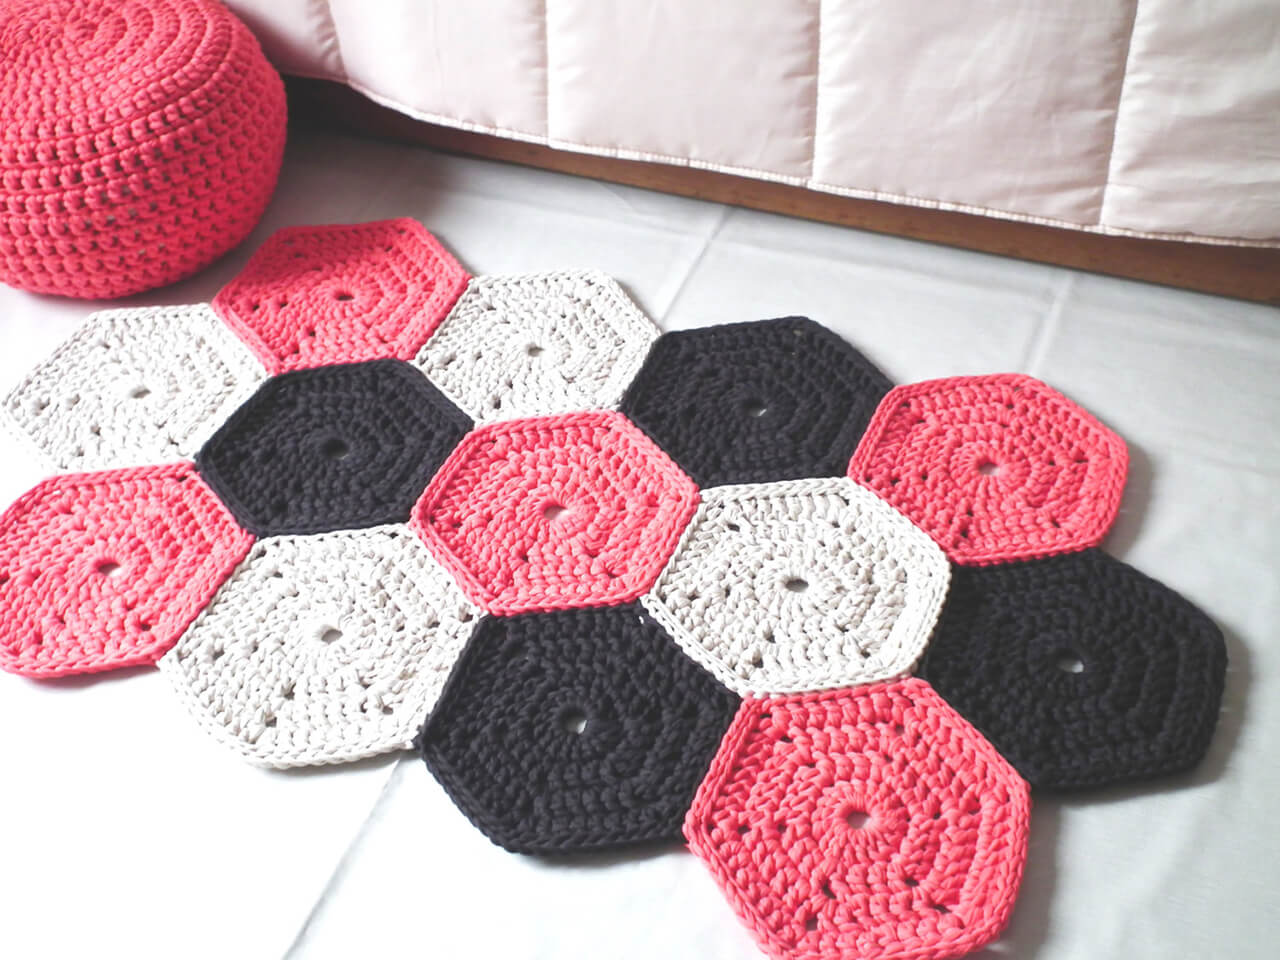 Crocheted Rug In Geometric Design